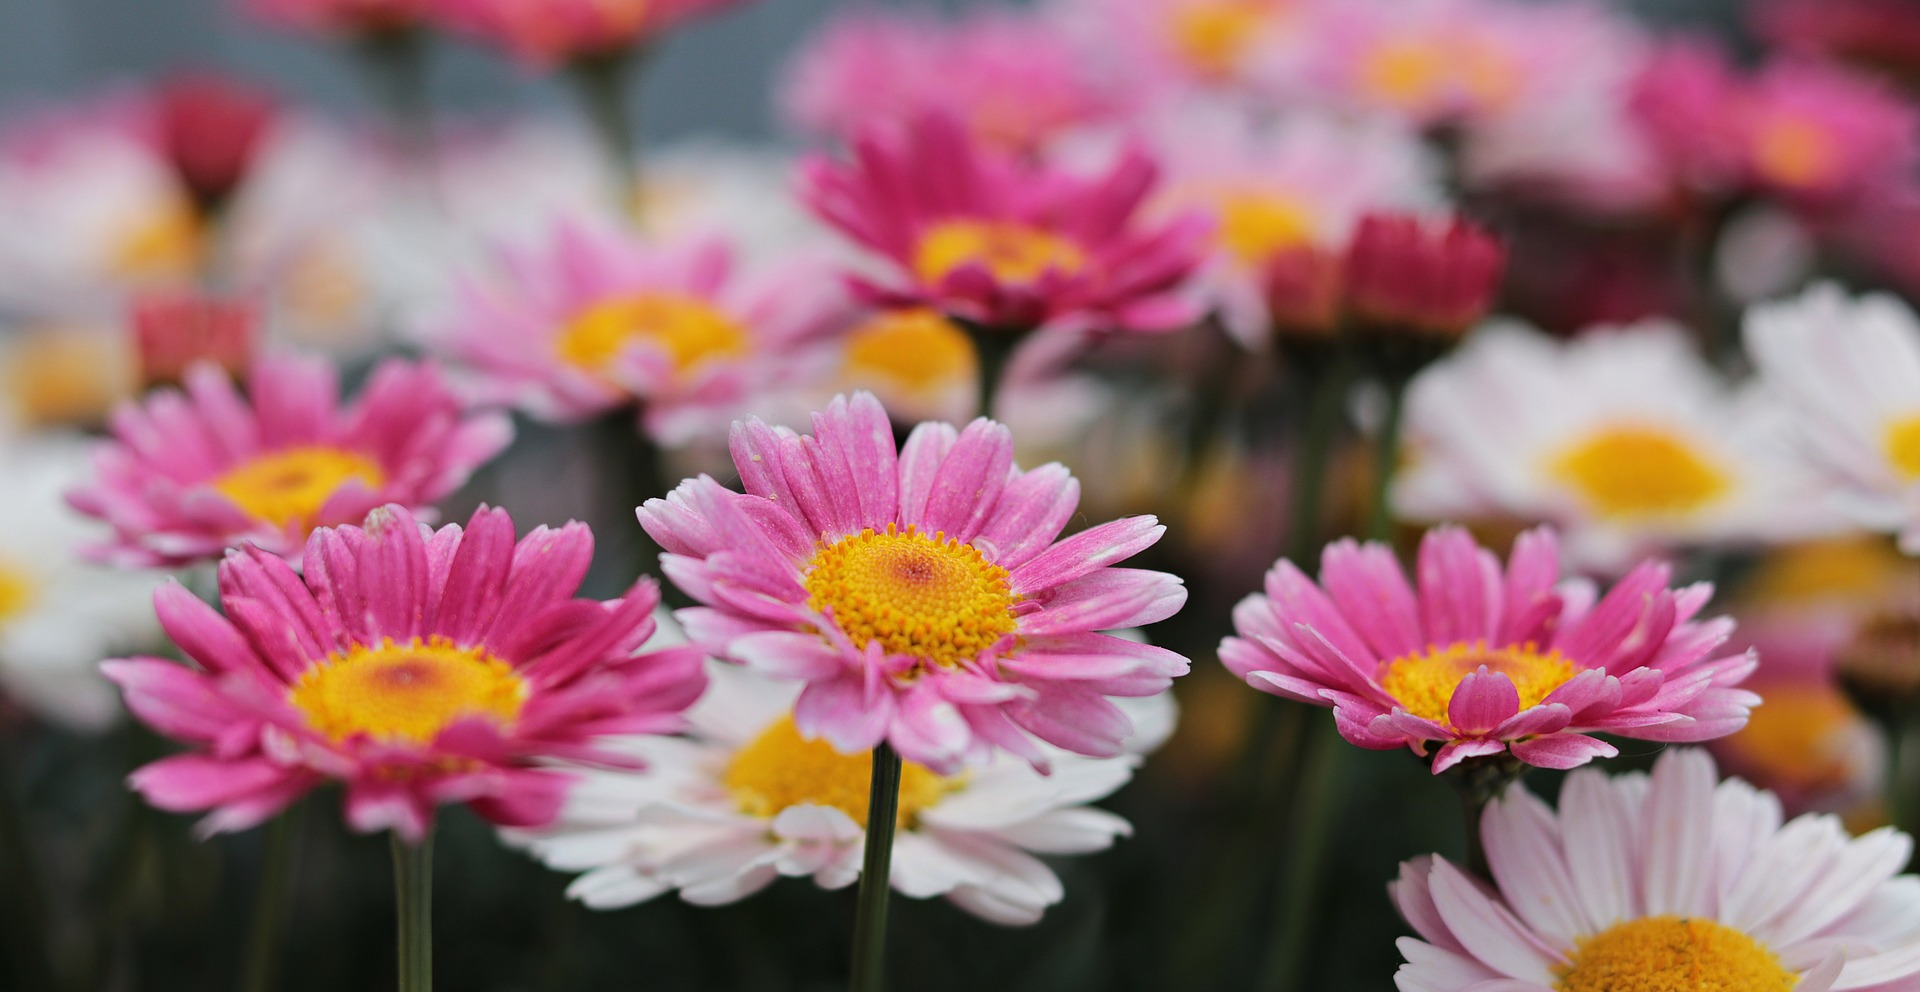 Header images of colourful daisies in a field